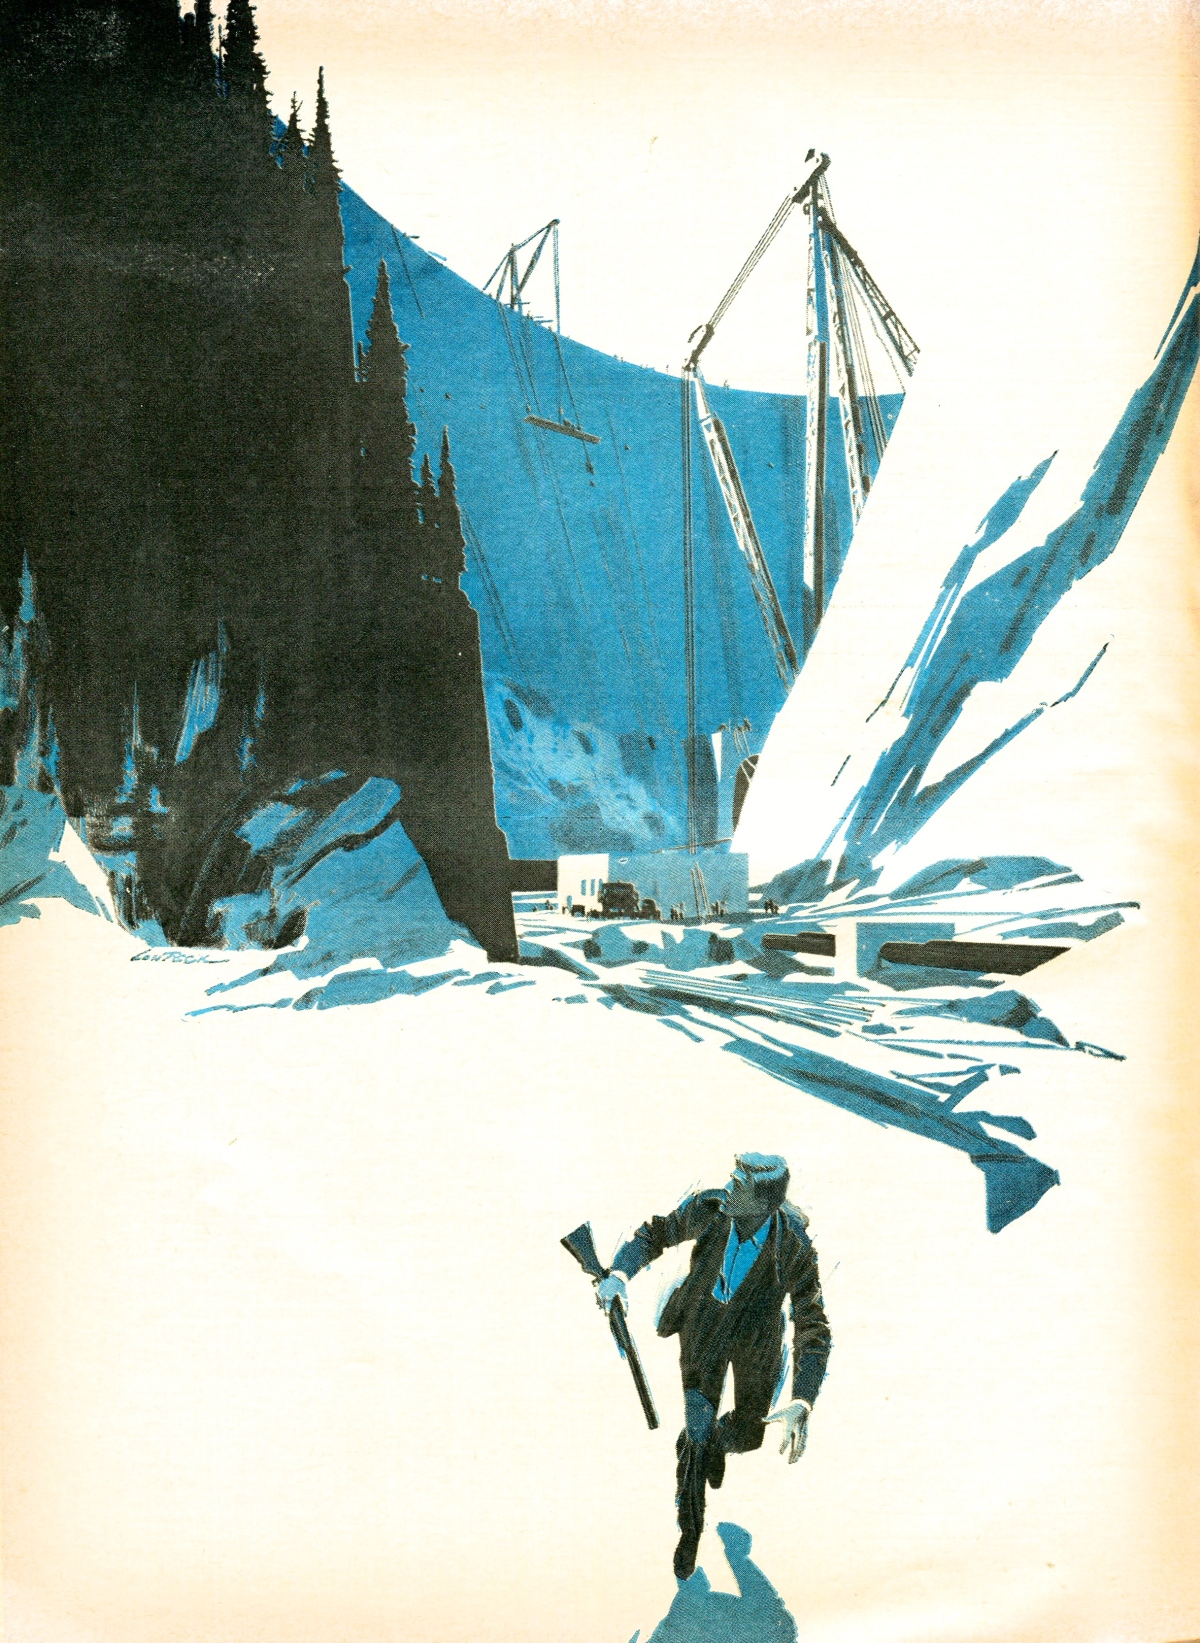 Desmond Bagley Landslide - Illustration by Lou Feck